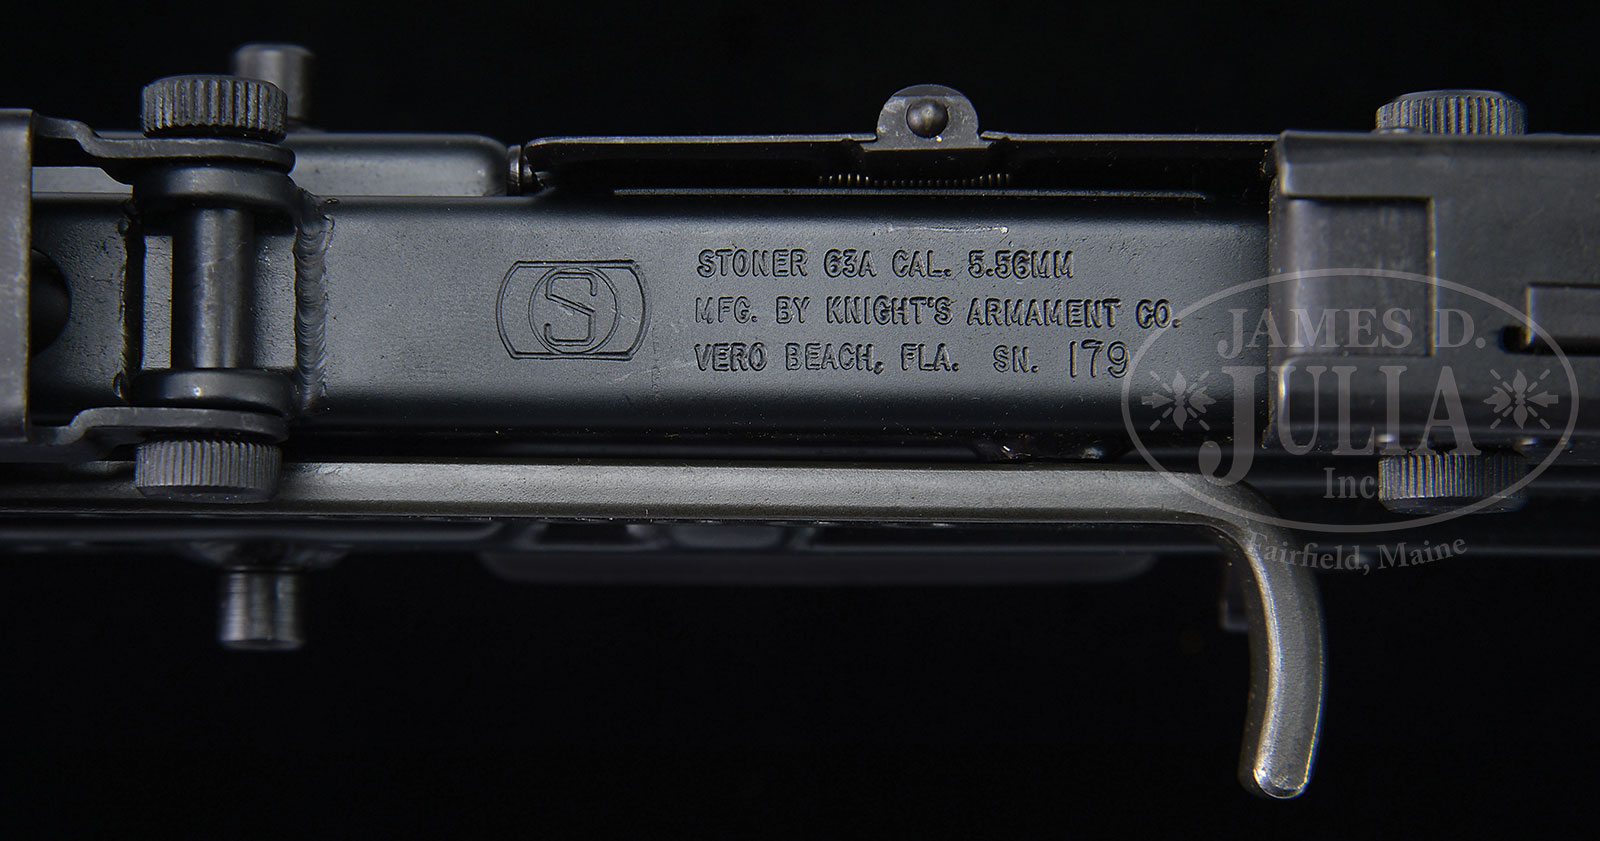 Exceedingly scarce knights armament company stoner 63a with top zoom altavistaventures Choice Image